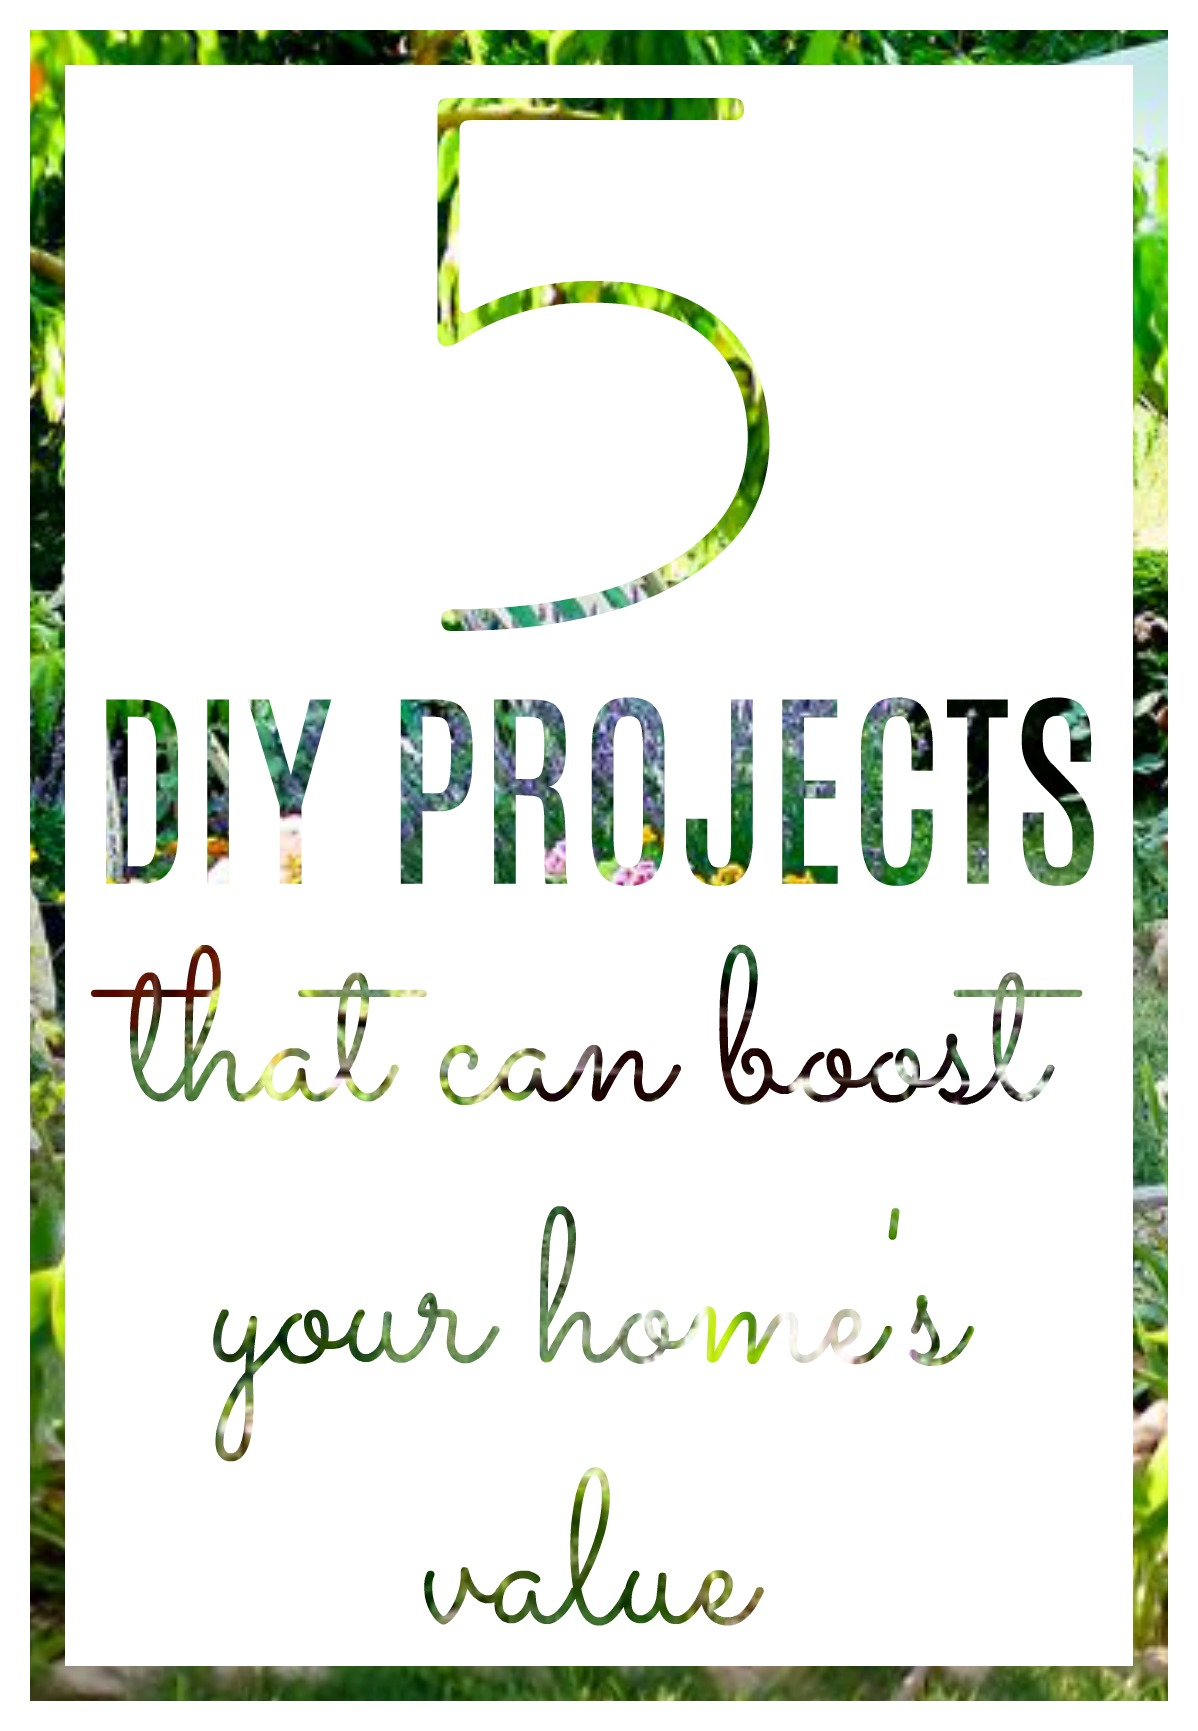 DIY is all the rage, but how can it really help you? Heree are 5 DIY projects that can BOOST your home's value!